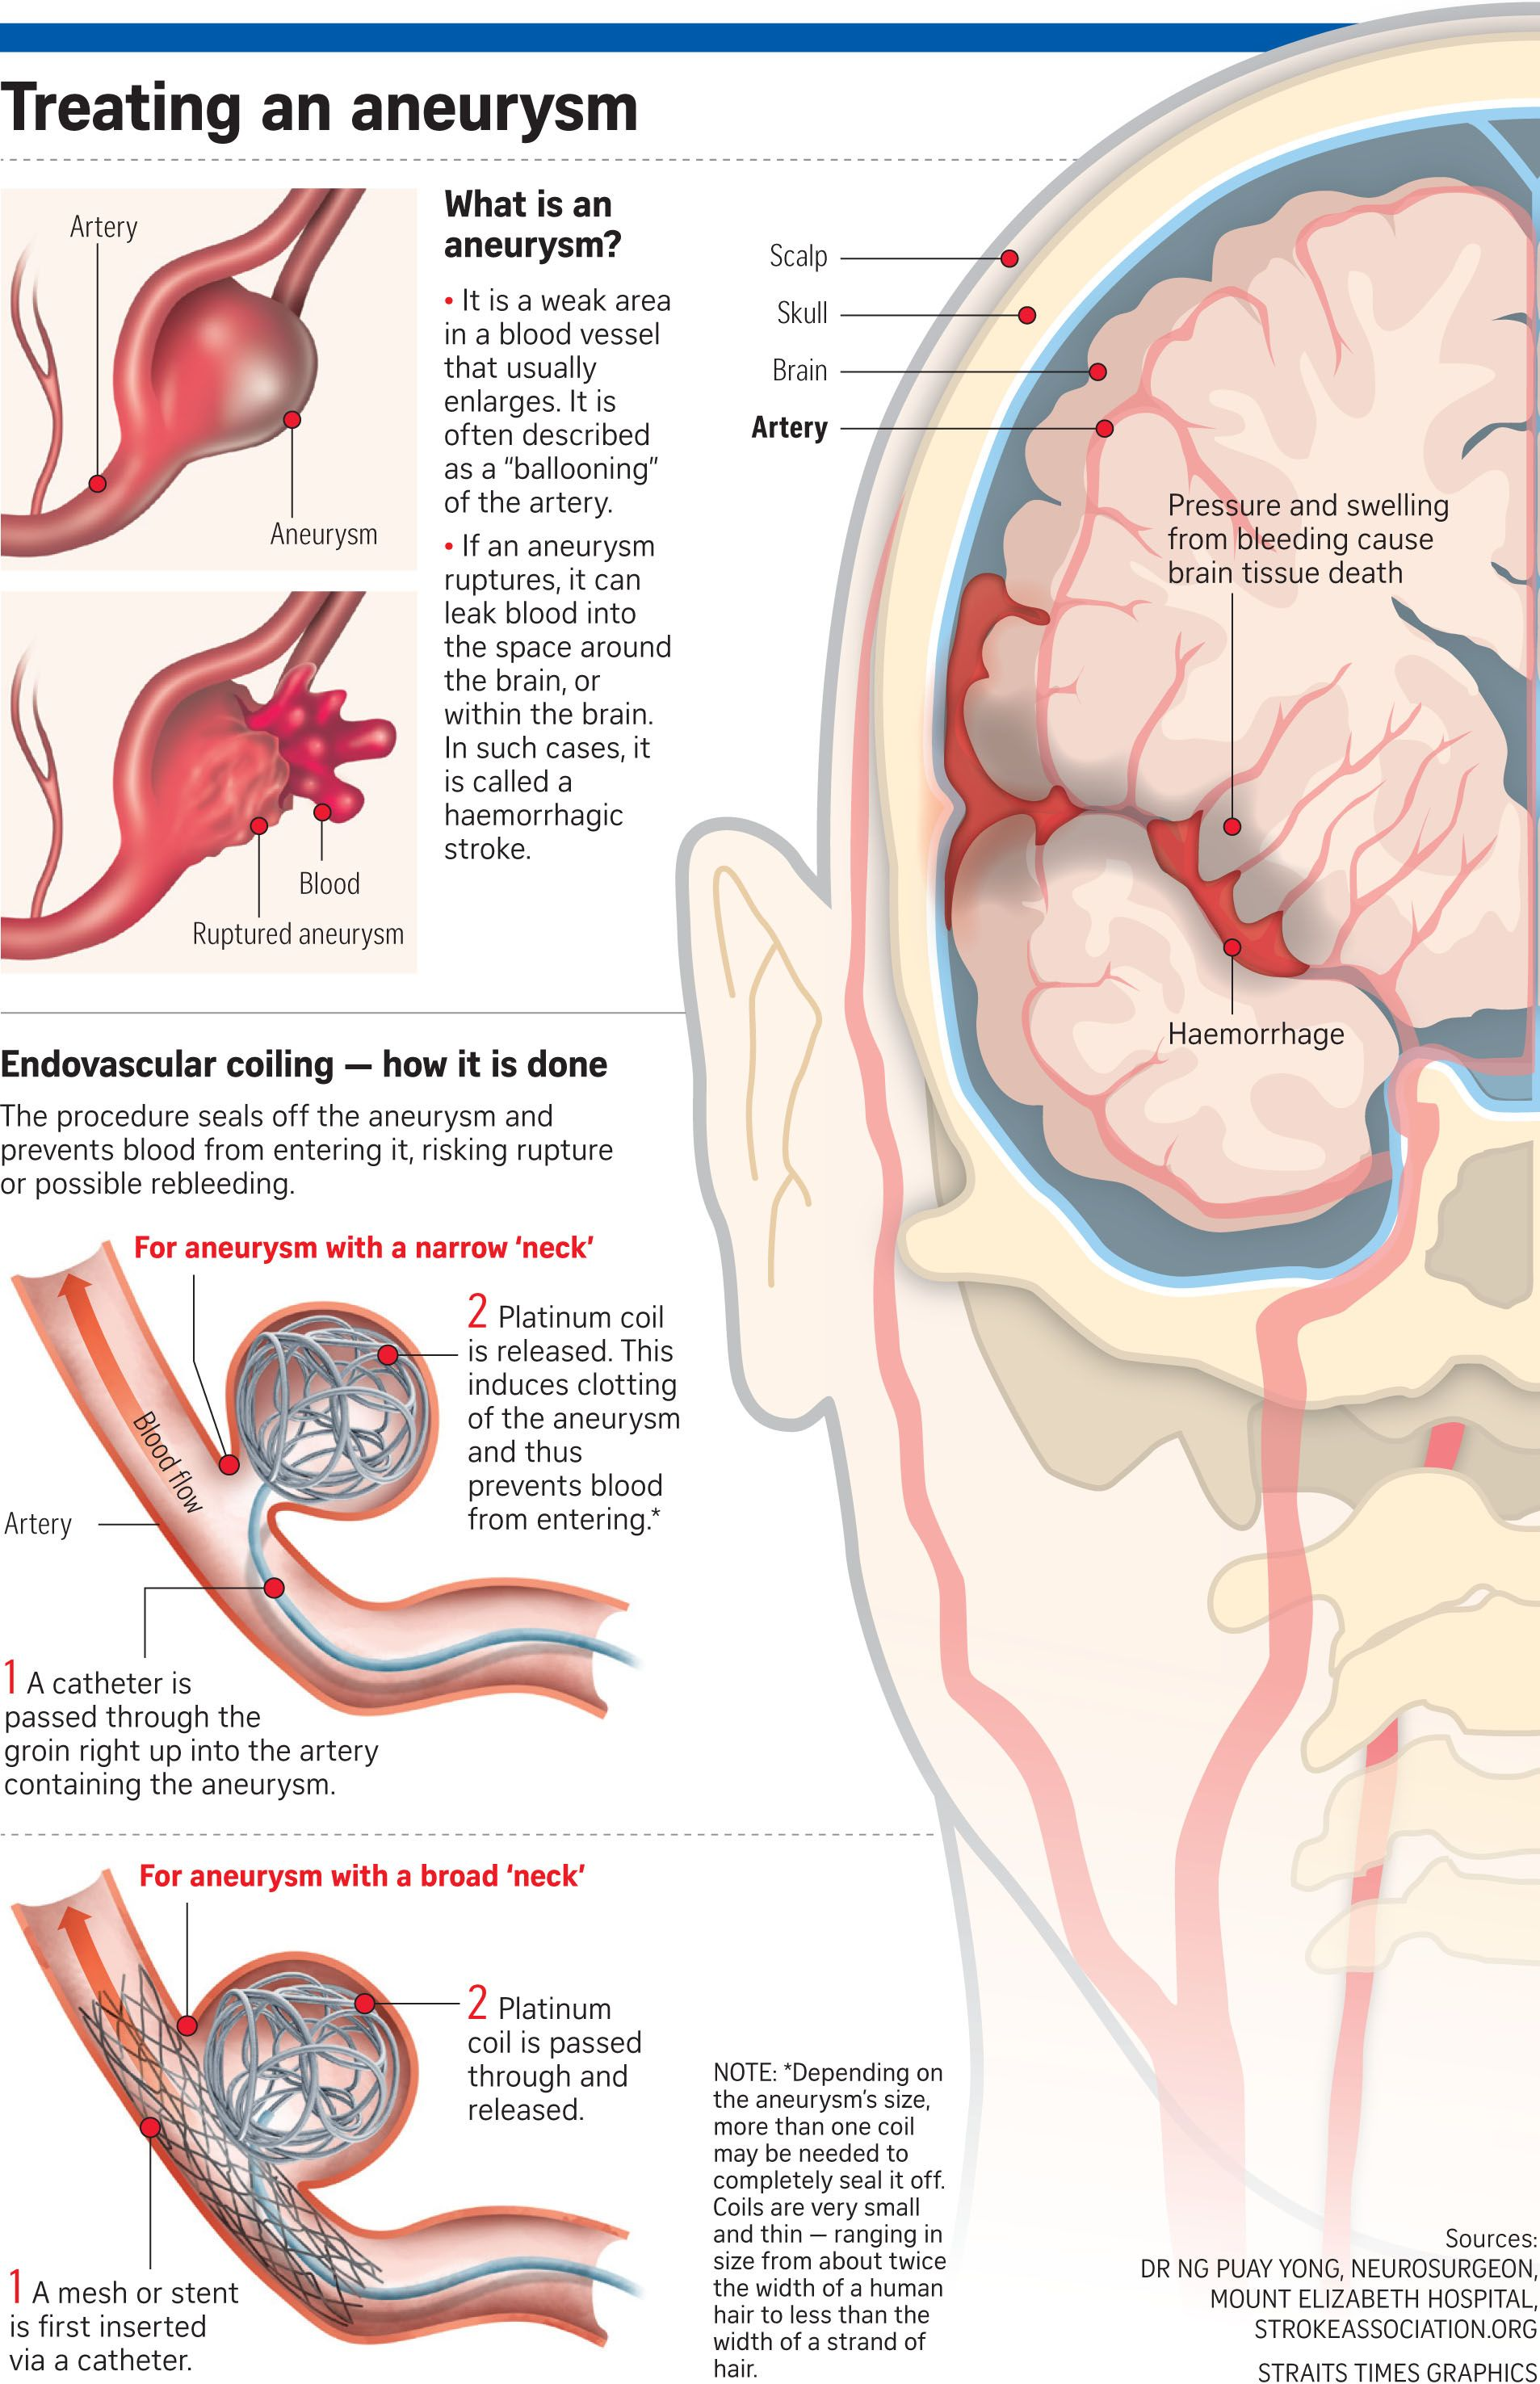 When someone gets a stroke caused by bleeding in the brain, an aneurysm is often the culprit.. Read more at straitstimes.com.